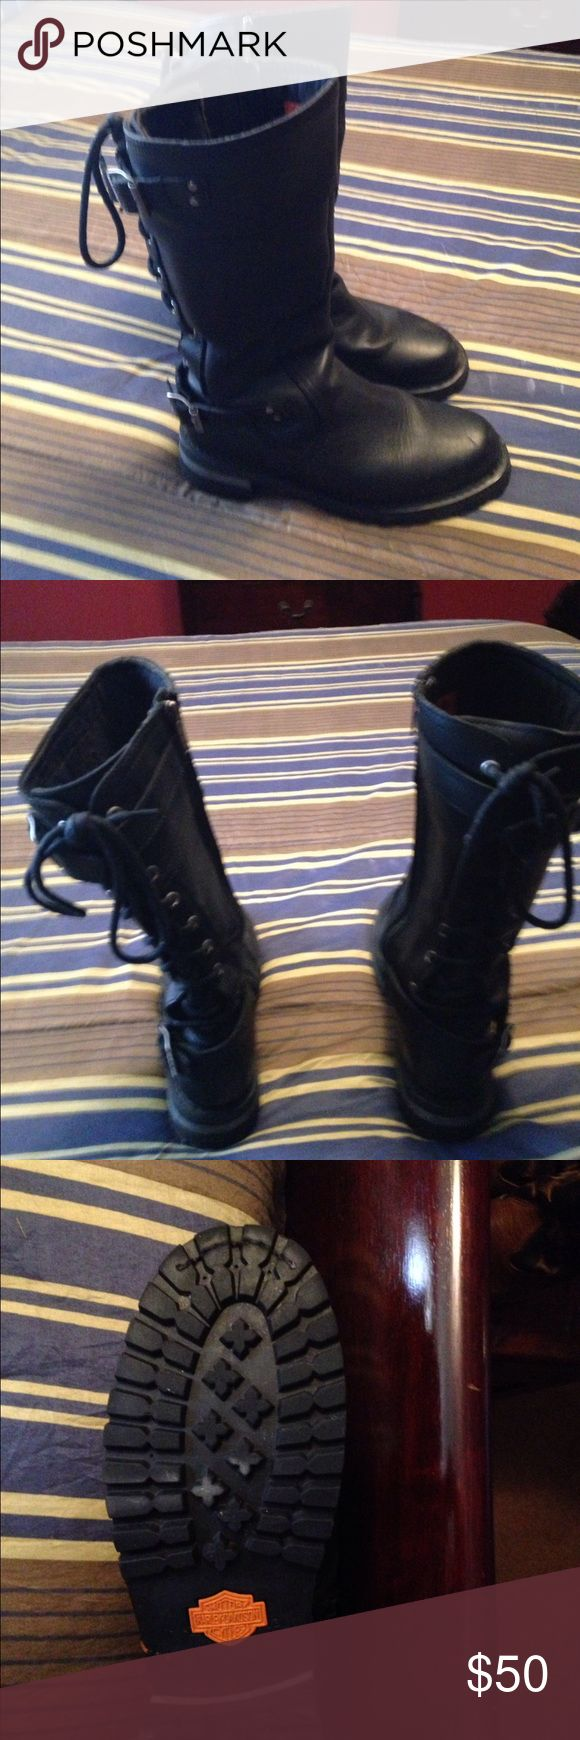 Harley Davidson boots size 9 women Size 9 like new women's Harley Davidson boots Harley-Davidson Shoes Lace Up Boots